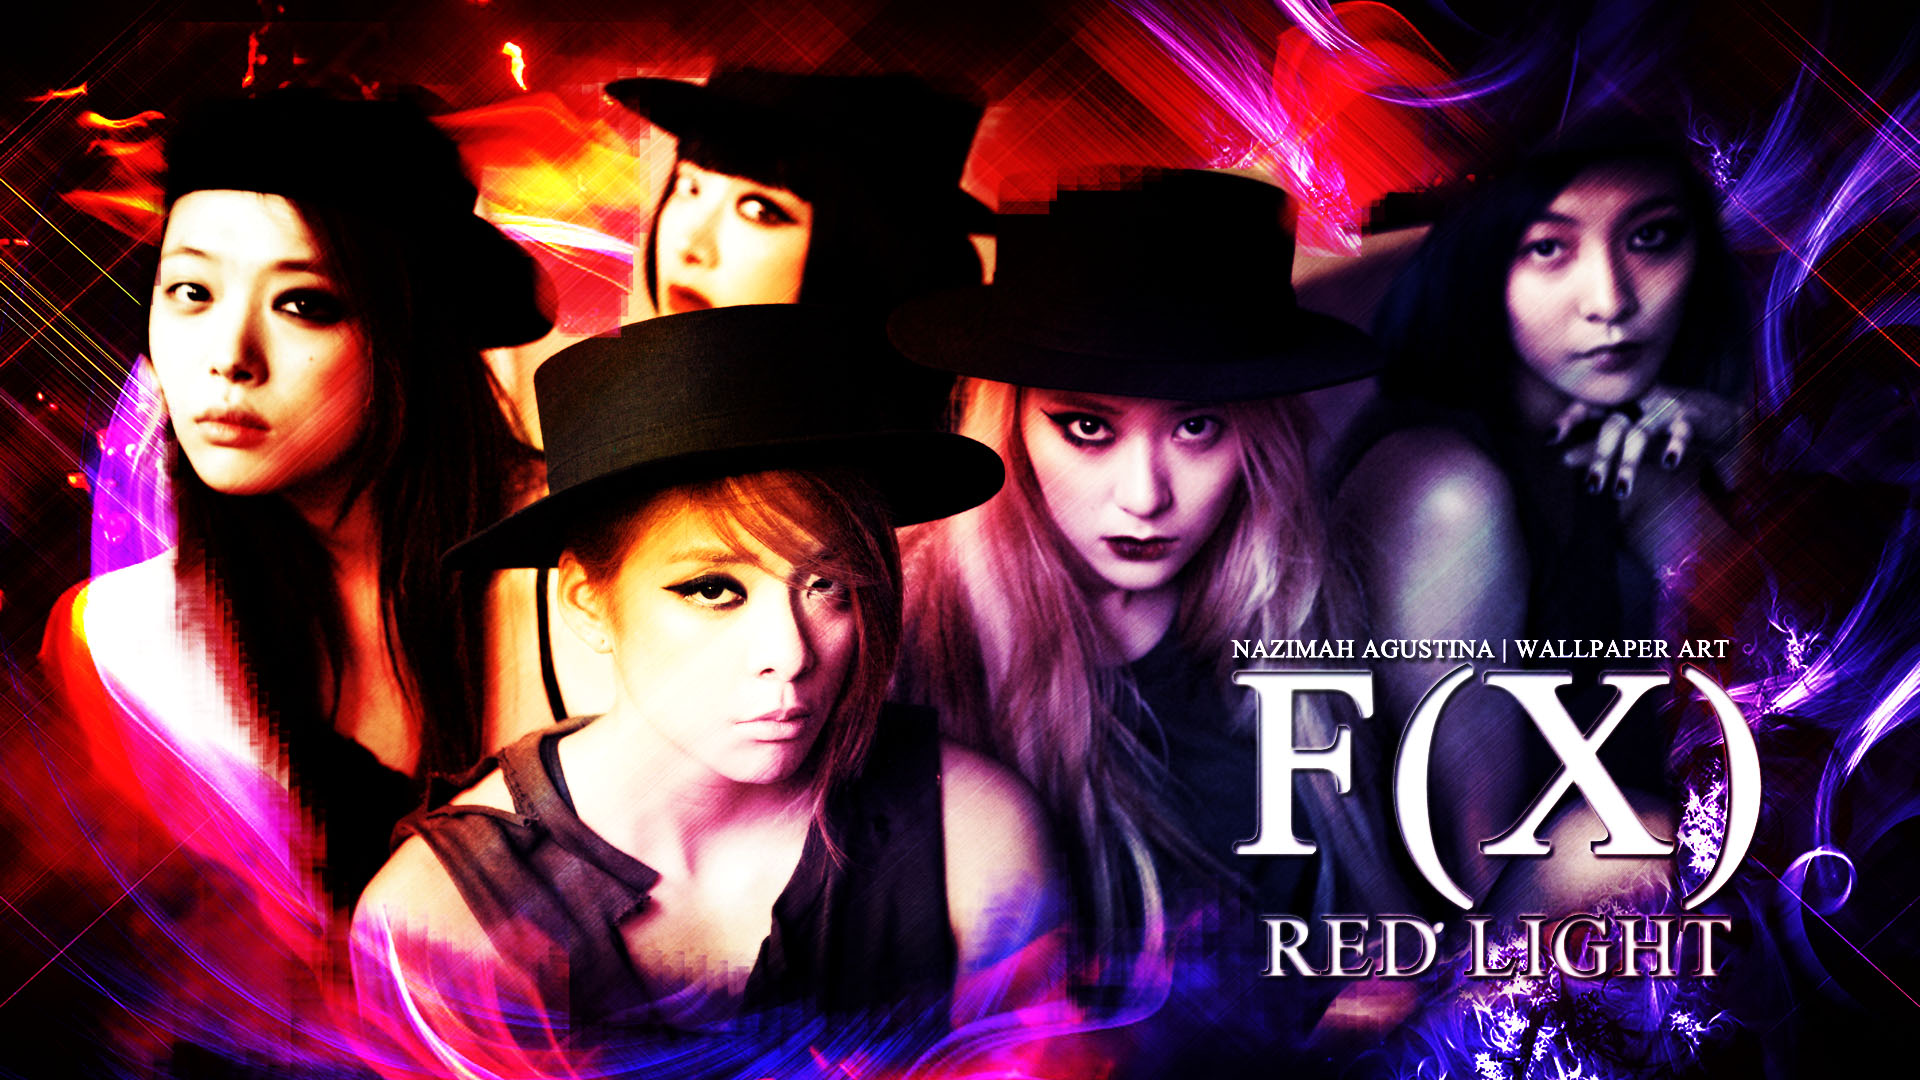 [Tutorial and Stock] How To Make Drama Romantic Wallpaper ... F(x) Luna Red Light Live